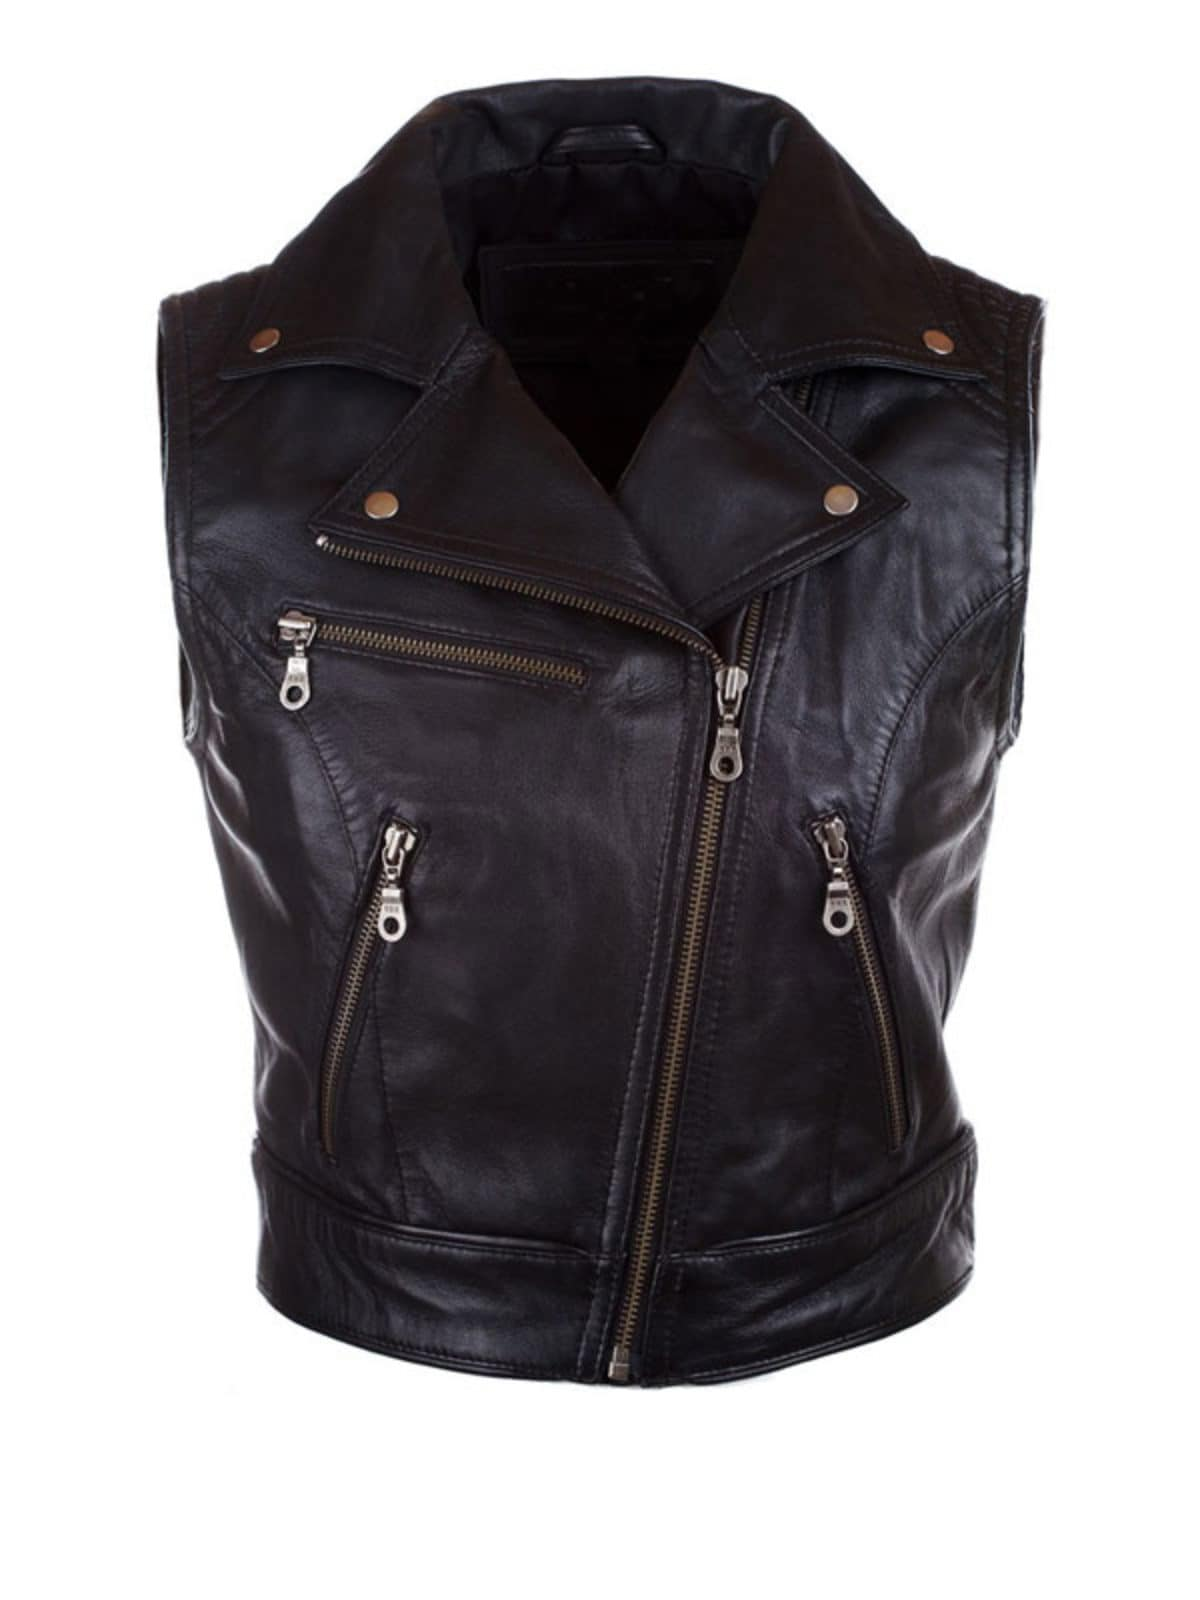 Womens Fashion Designer Leather Motorcycle Vest Black